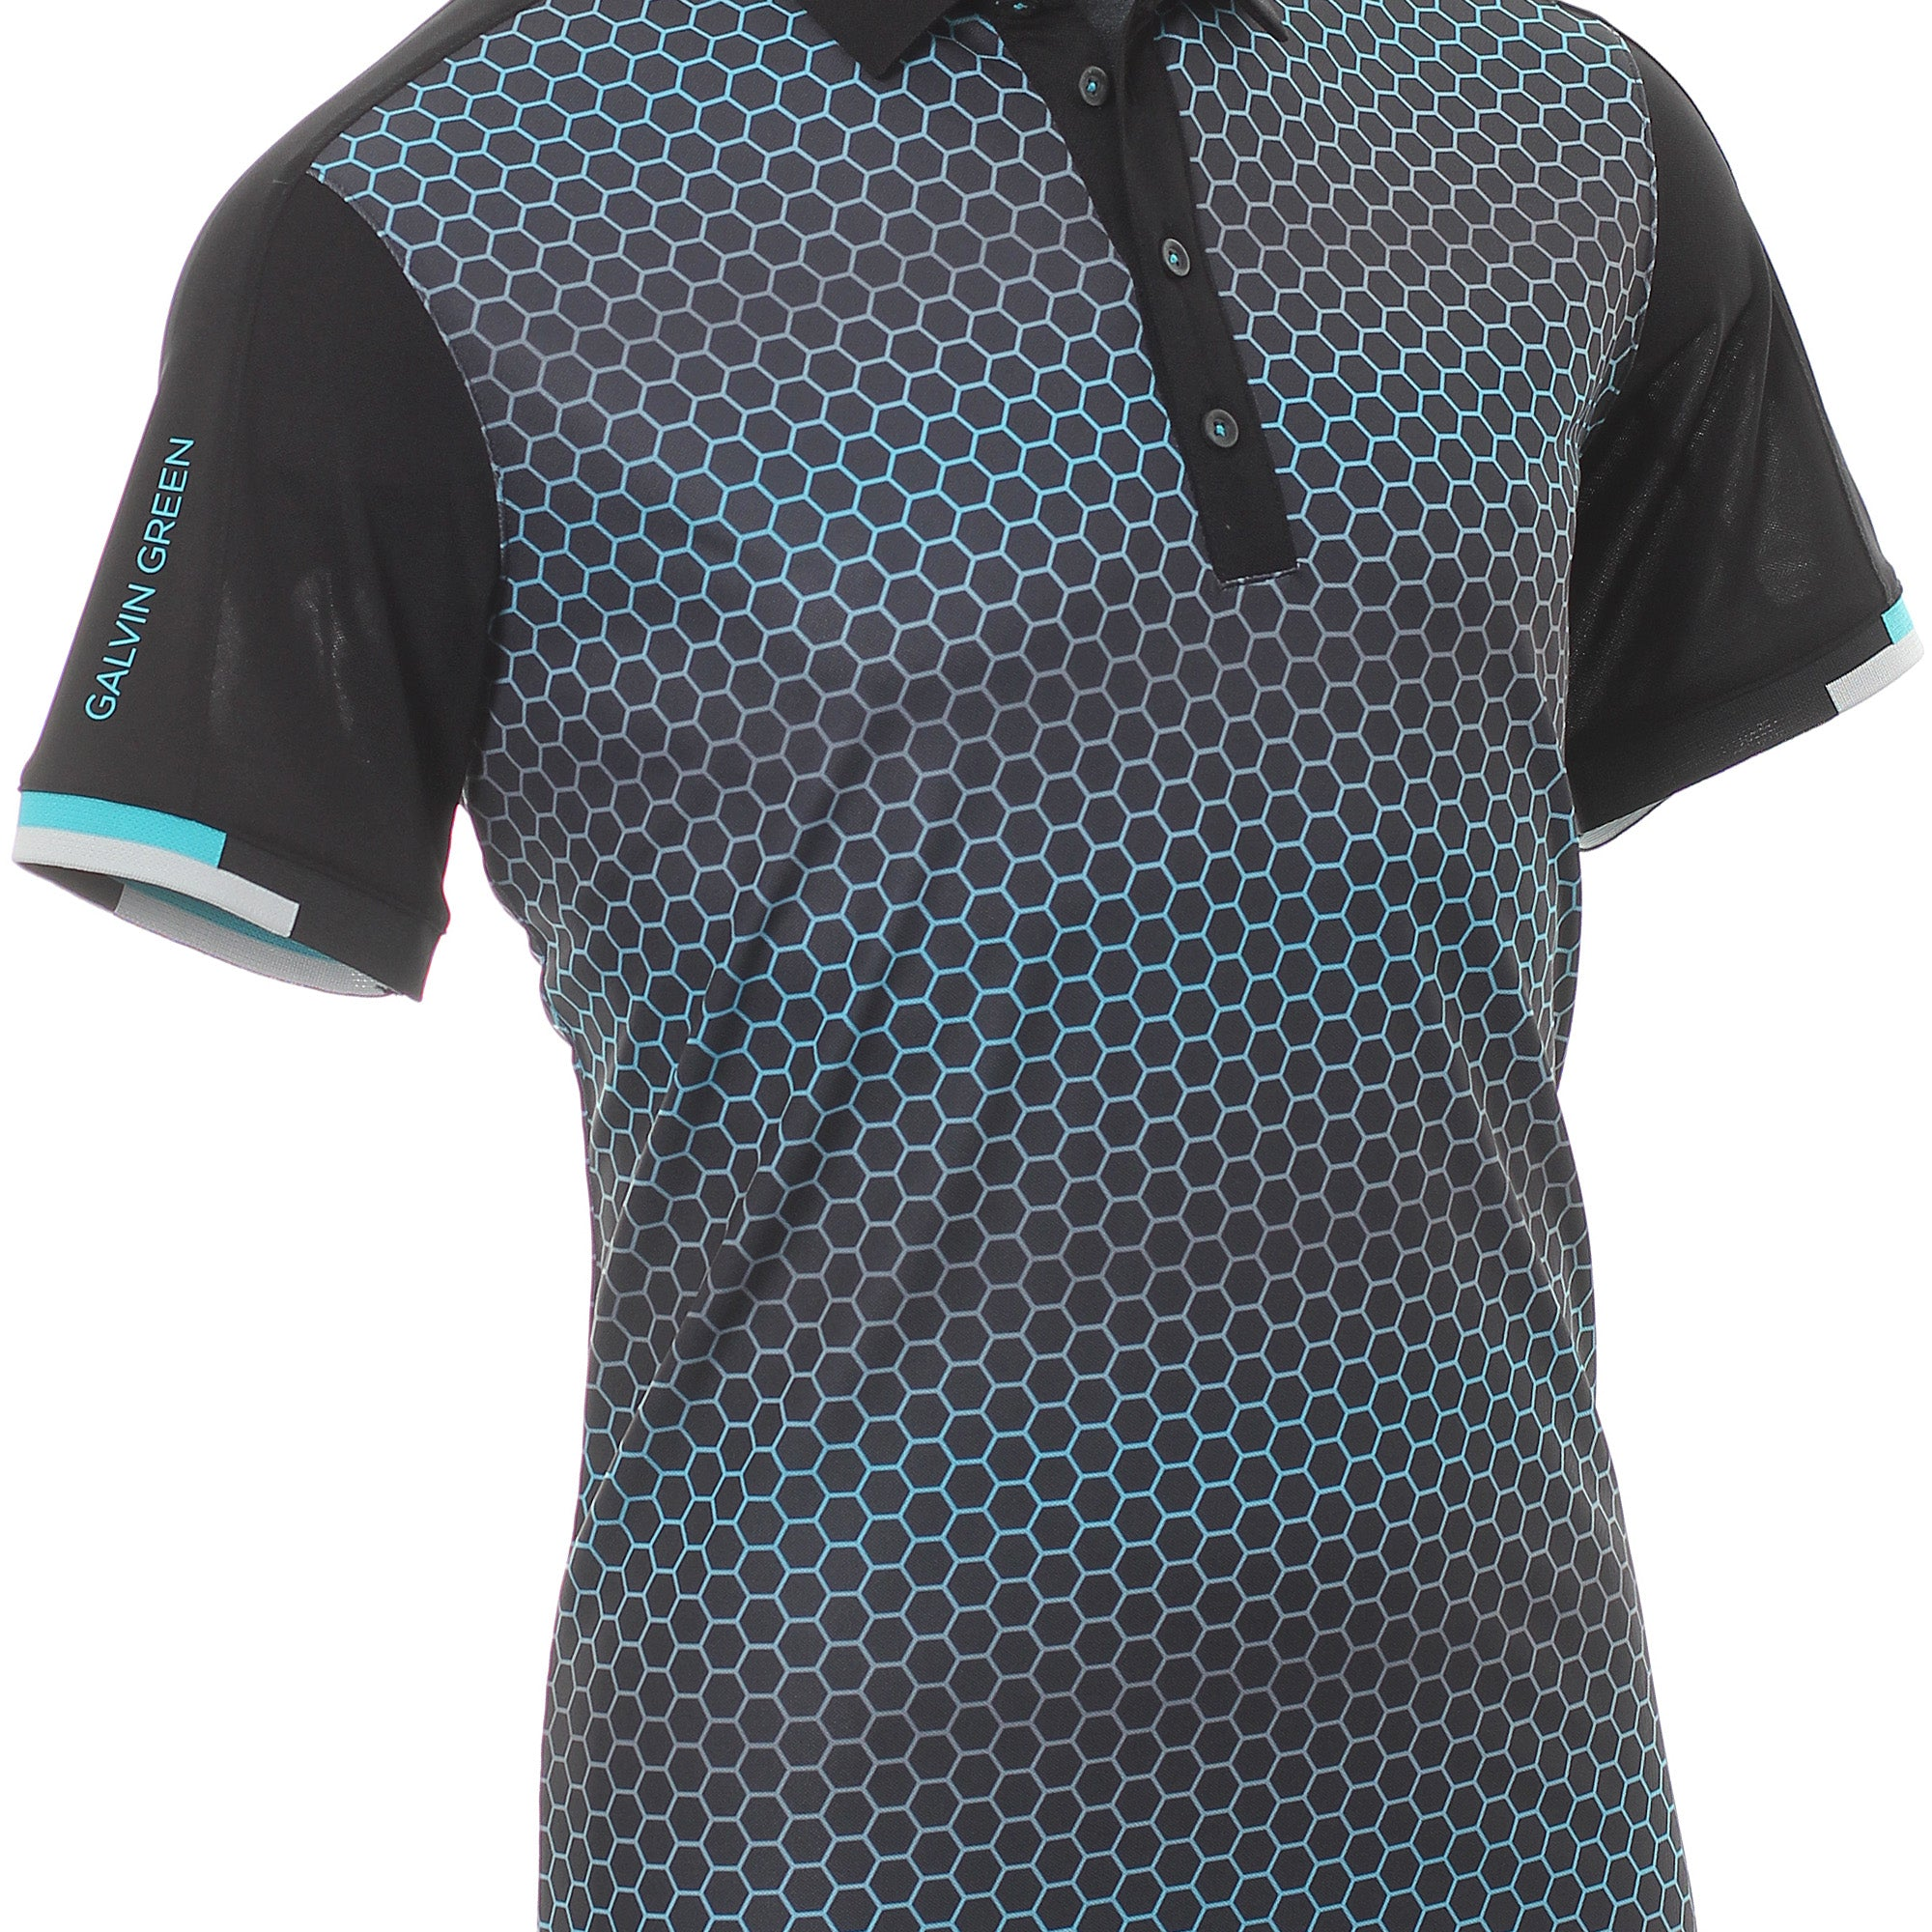 Galvin Green Myles Ventil8+ Golf Shirt